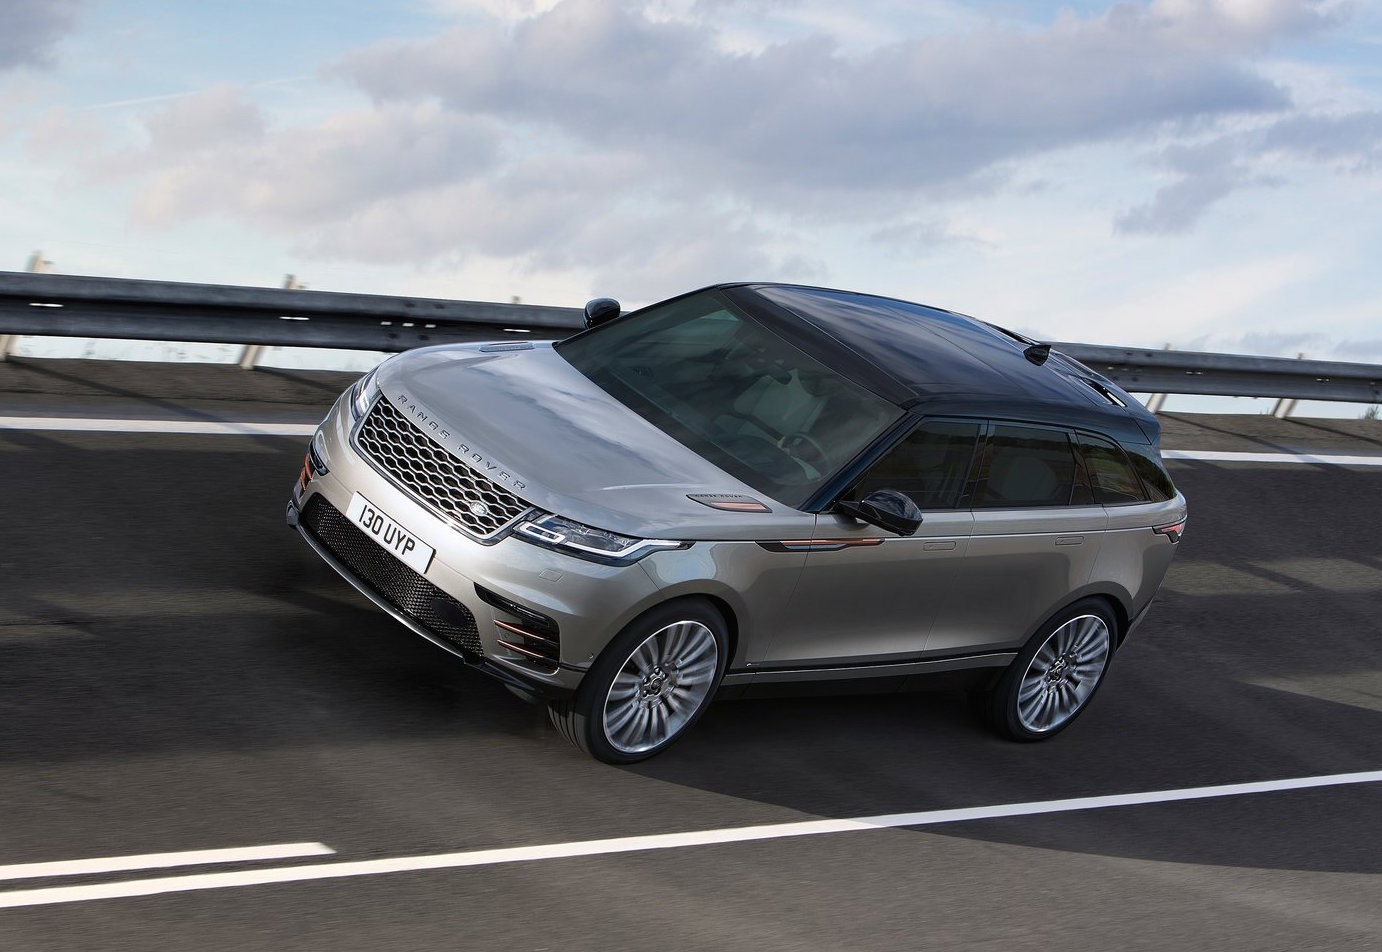 range rover velar v8 39 svr 39 confirmed via prototype. Black Bedroom Furniture Sets. Home Design Ideas